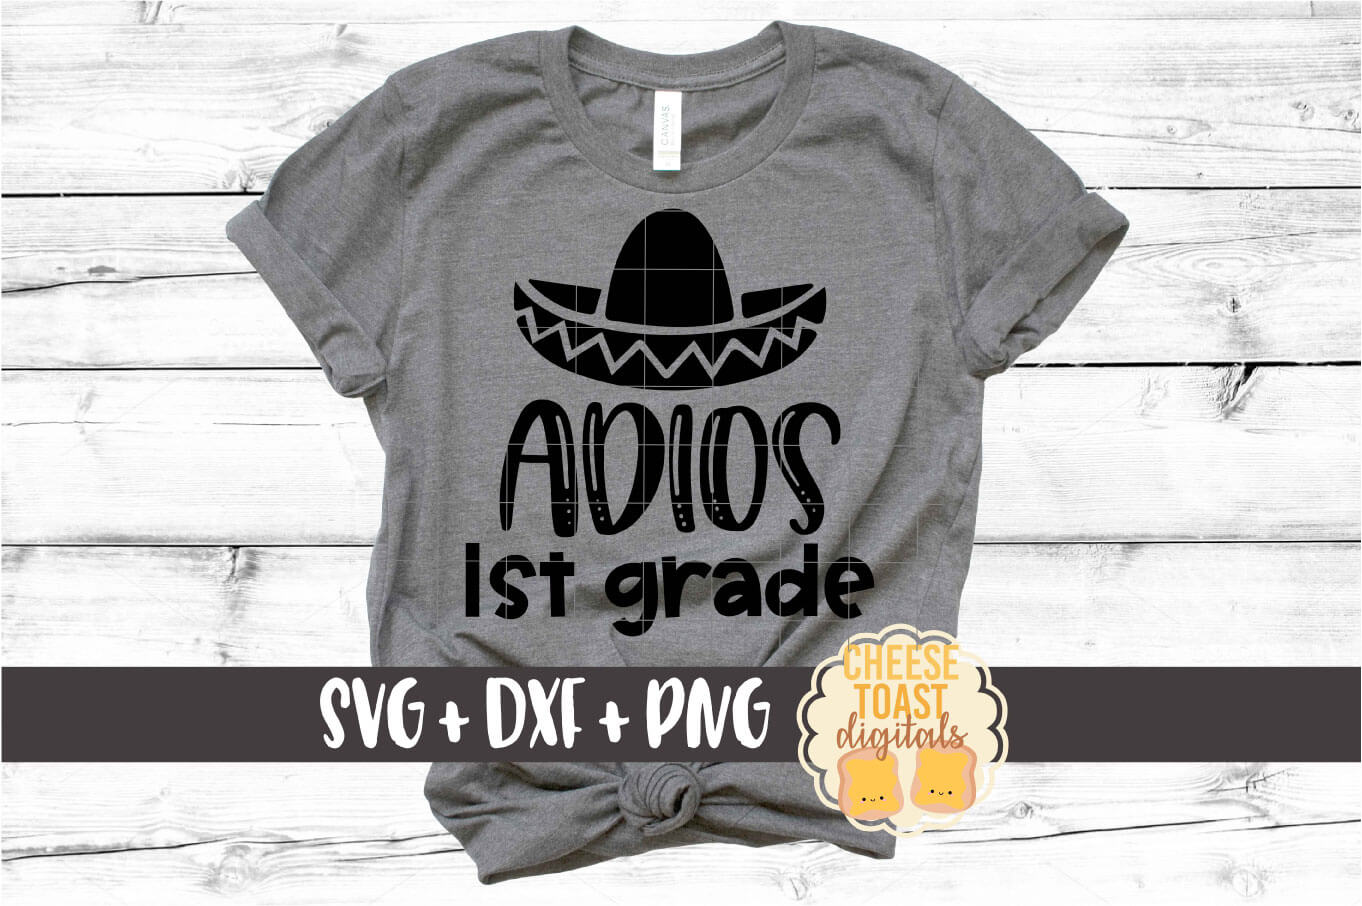 Adios 1st Grade - Last Day of School SVG PNG DXF Cut Files example image 1